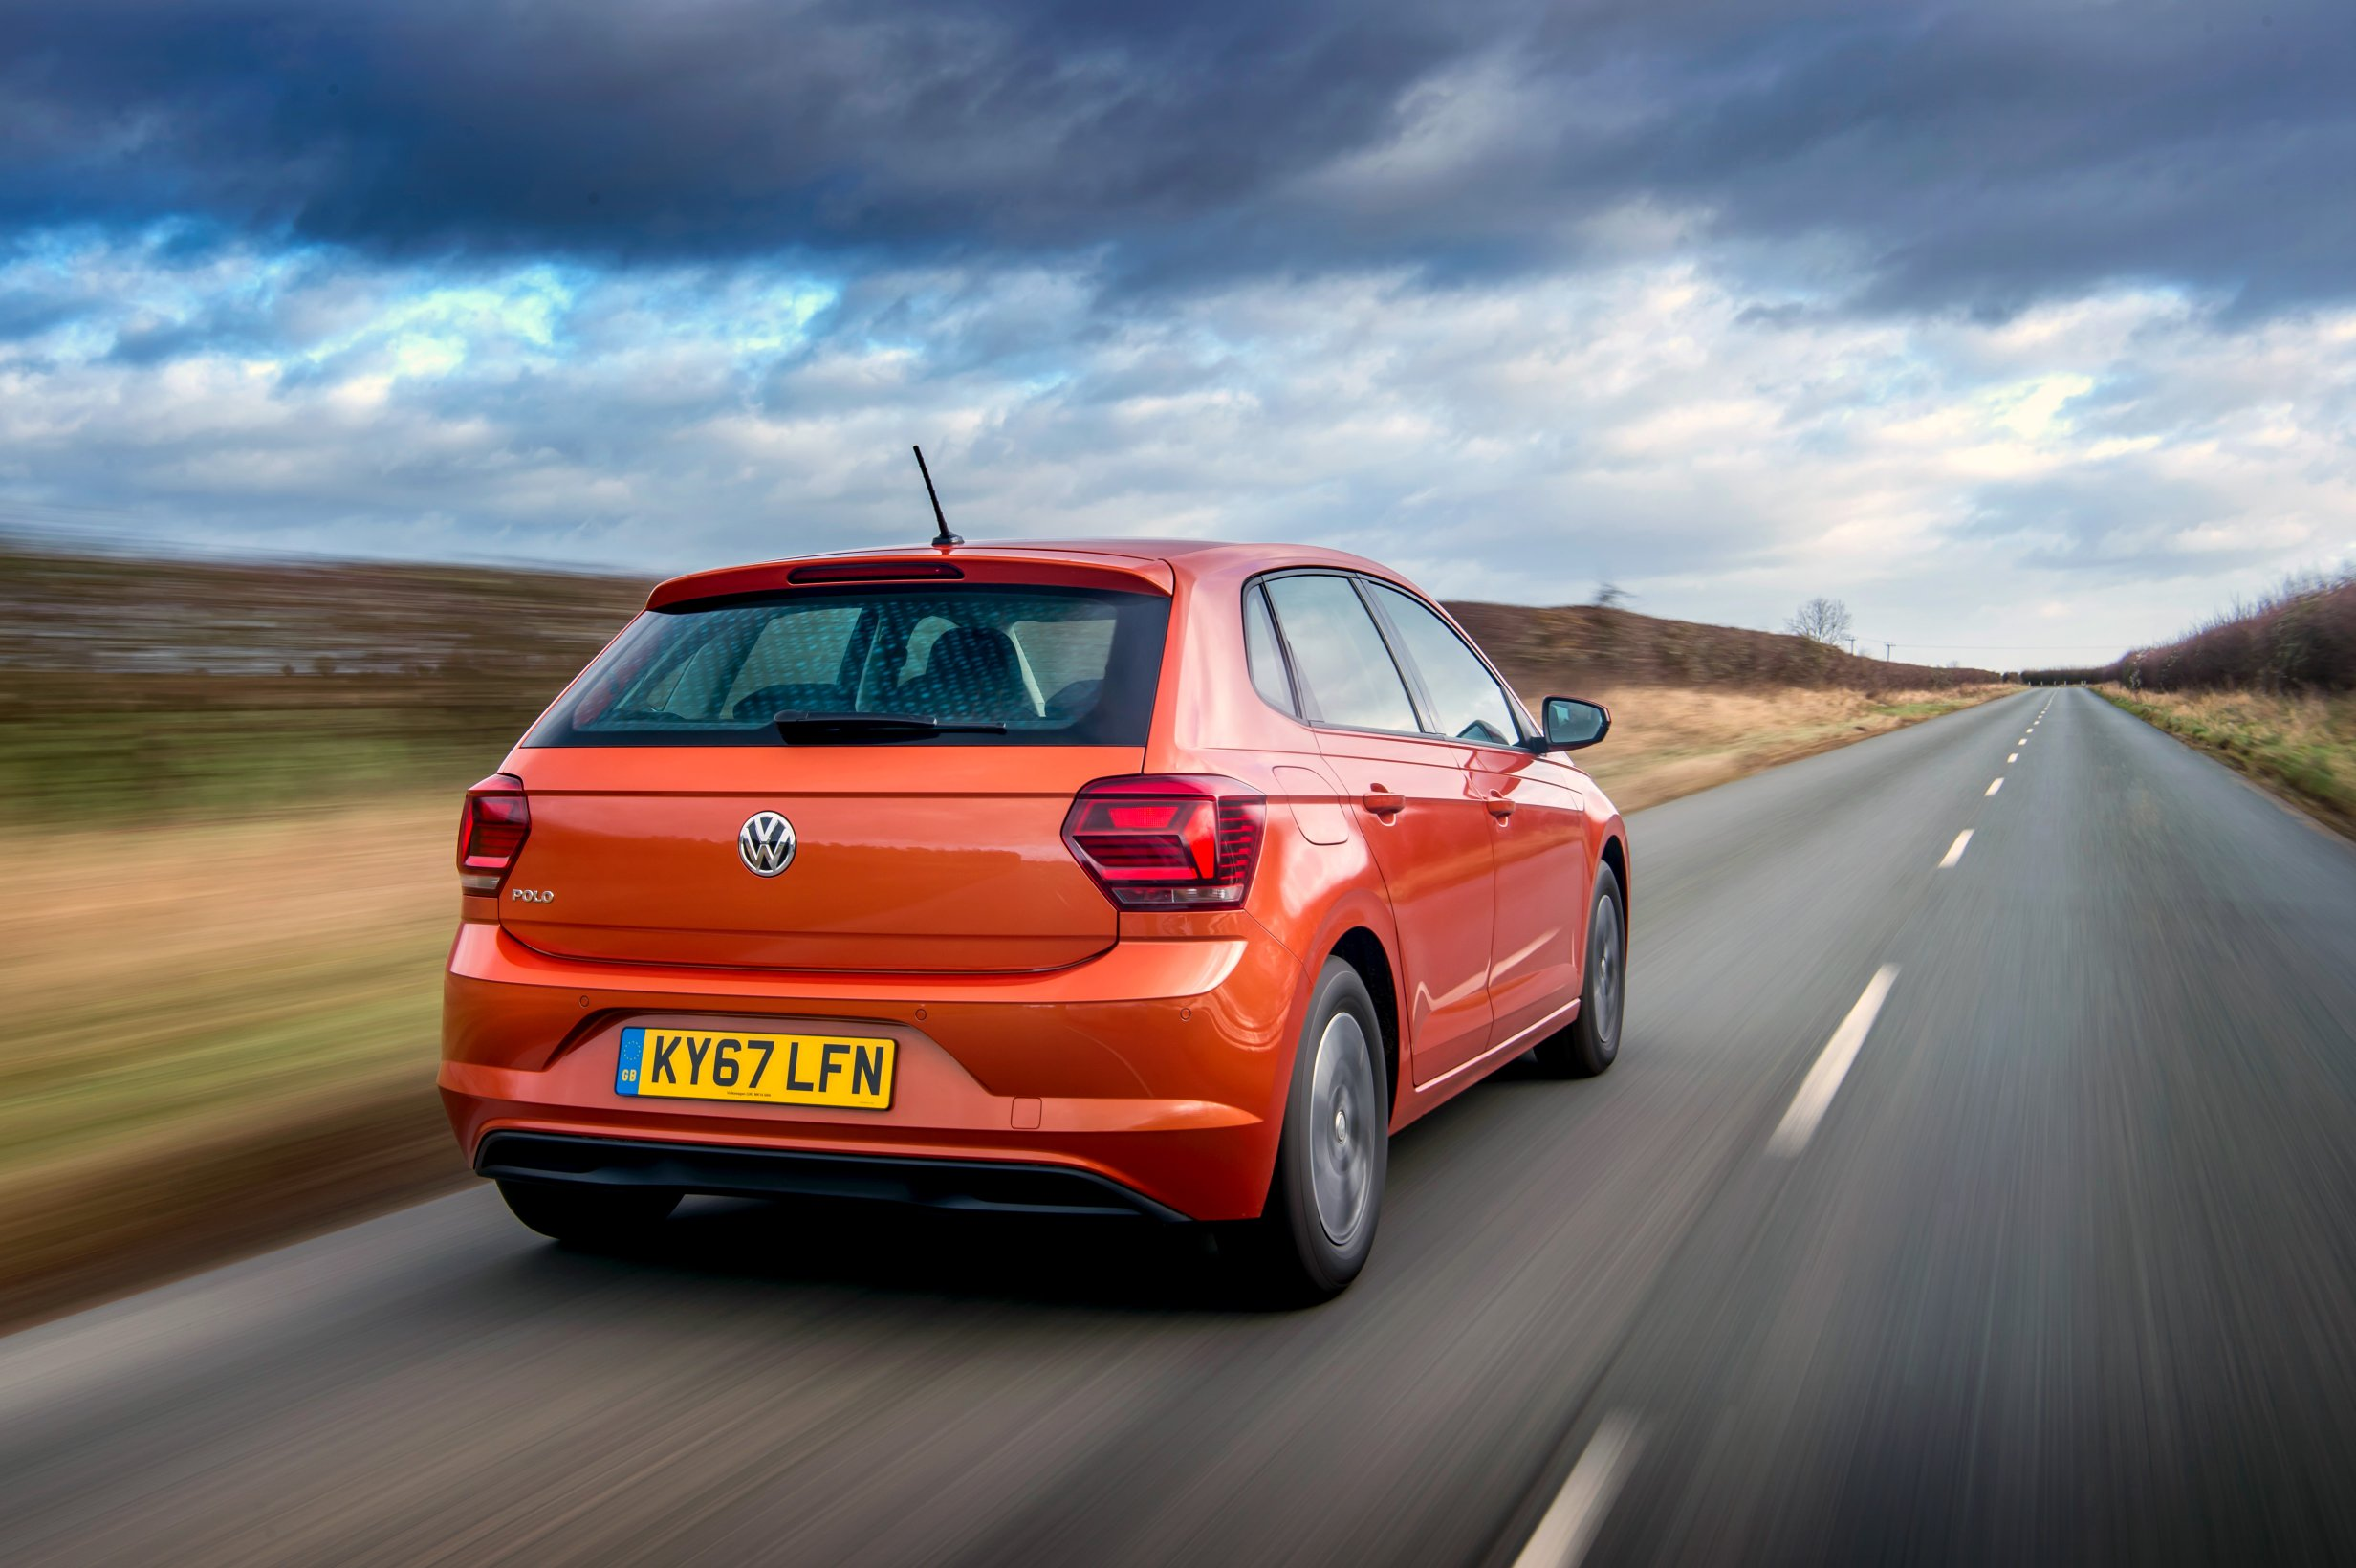 Metallic orange new Volkswagen Polo from behind driving on a lane